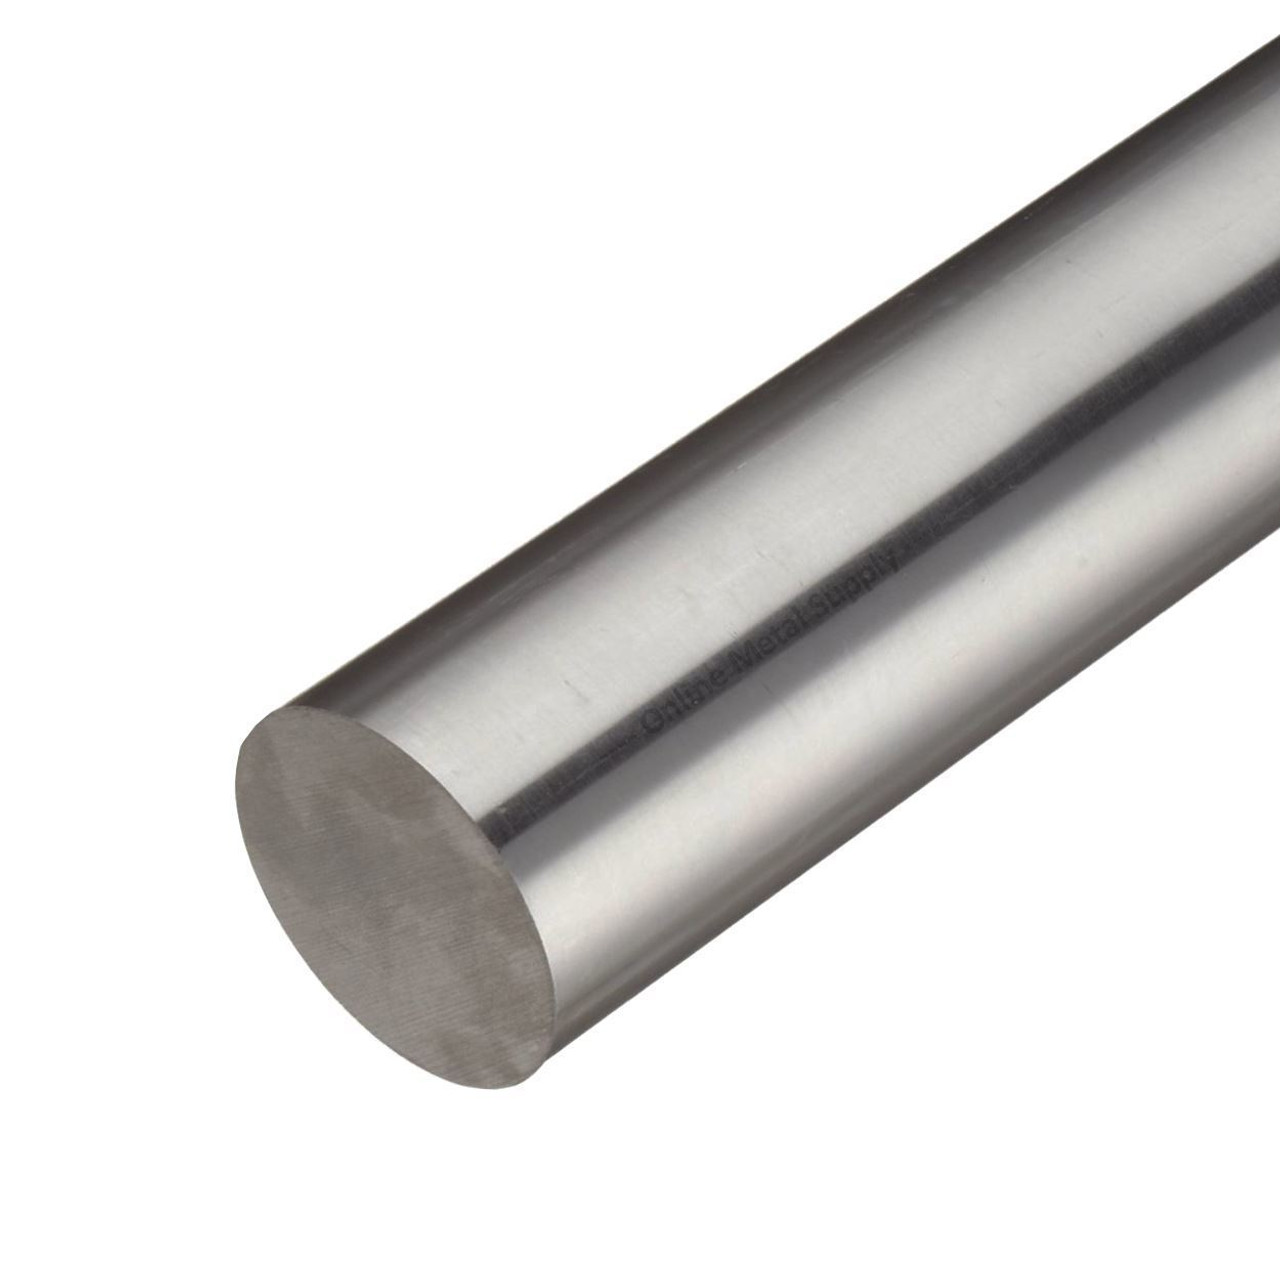 0.500 (1/2 inch) x 48 inches, 17-4 Cond A CF Stainless Steel Round Rod